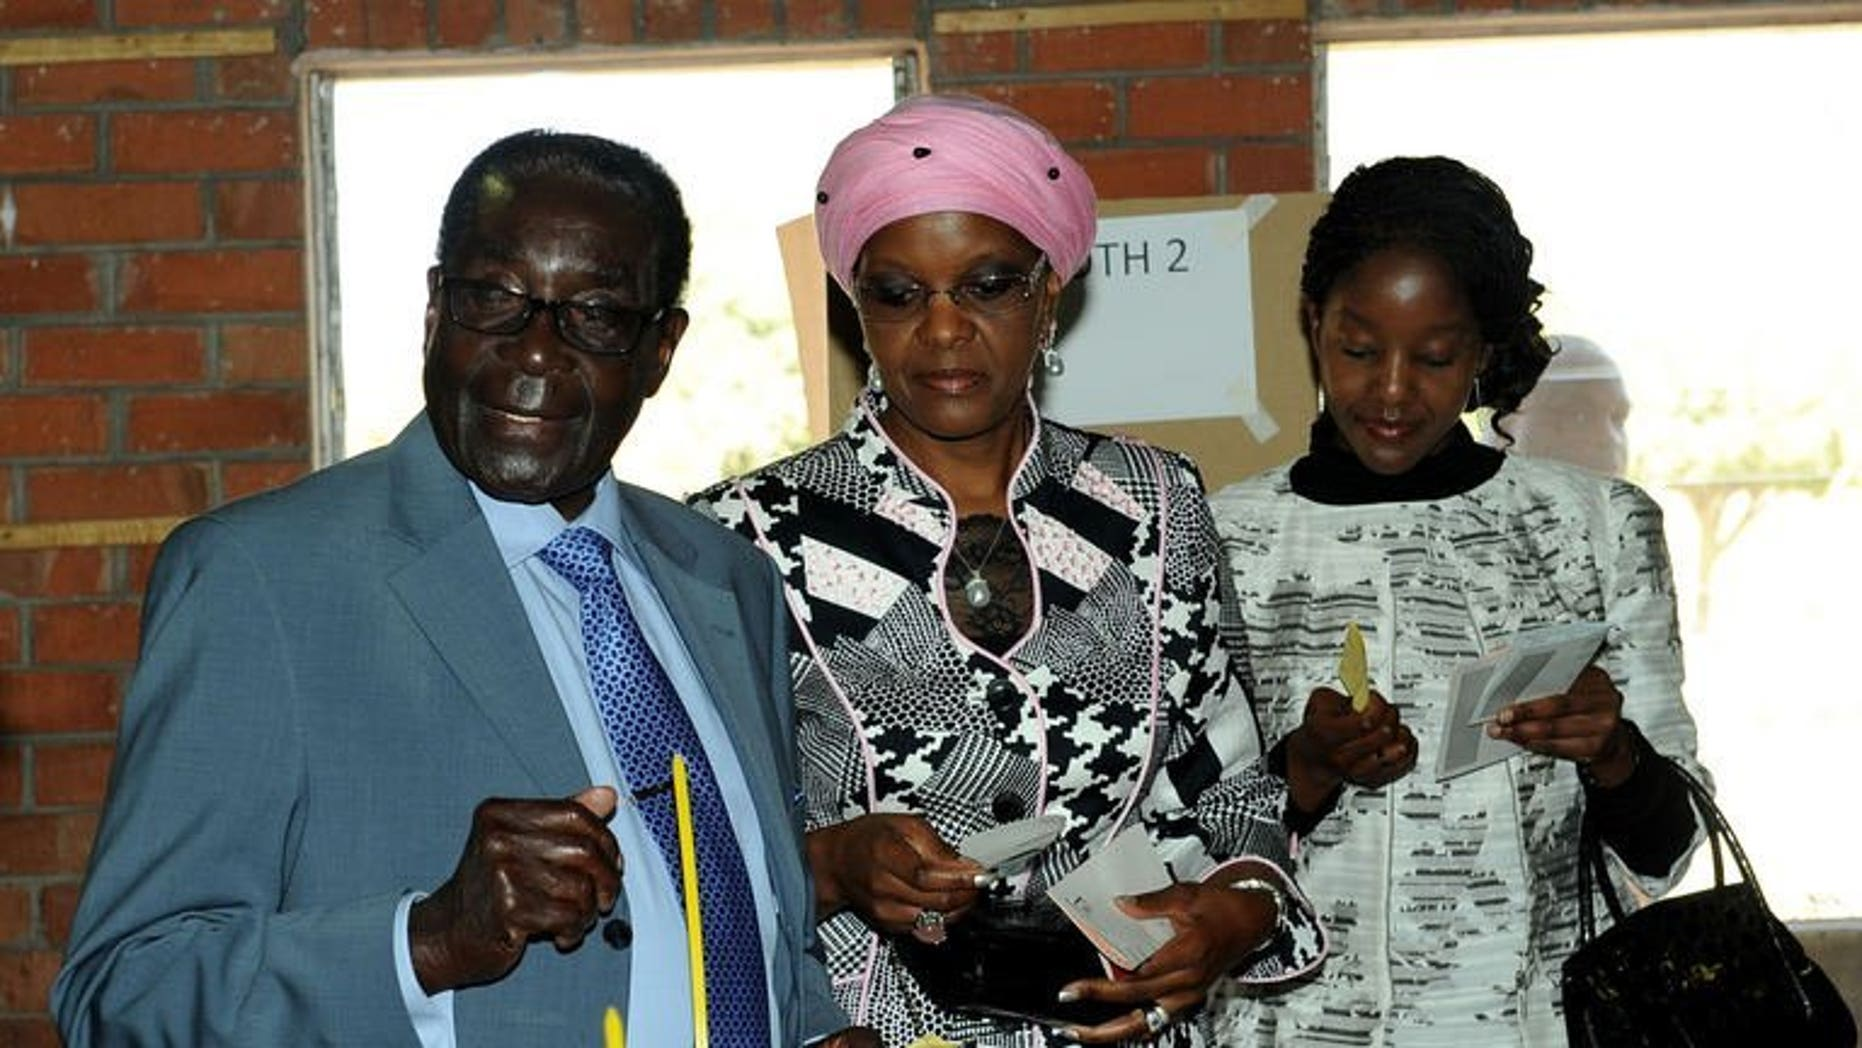 """Zimbabwe President Robert Mugabe (L) casts his vote with his wife Grace and daughter Bona (R) at a polling booth in a school in the capital Harare on July 31, 2013. Mugabe dismissed allegations of vote rigging in elections on Wednesday, saying that is just """"politicking""""."""